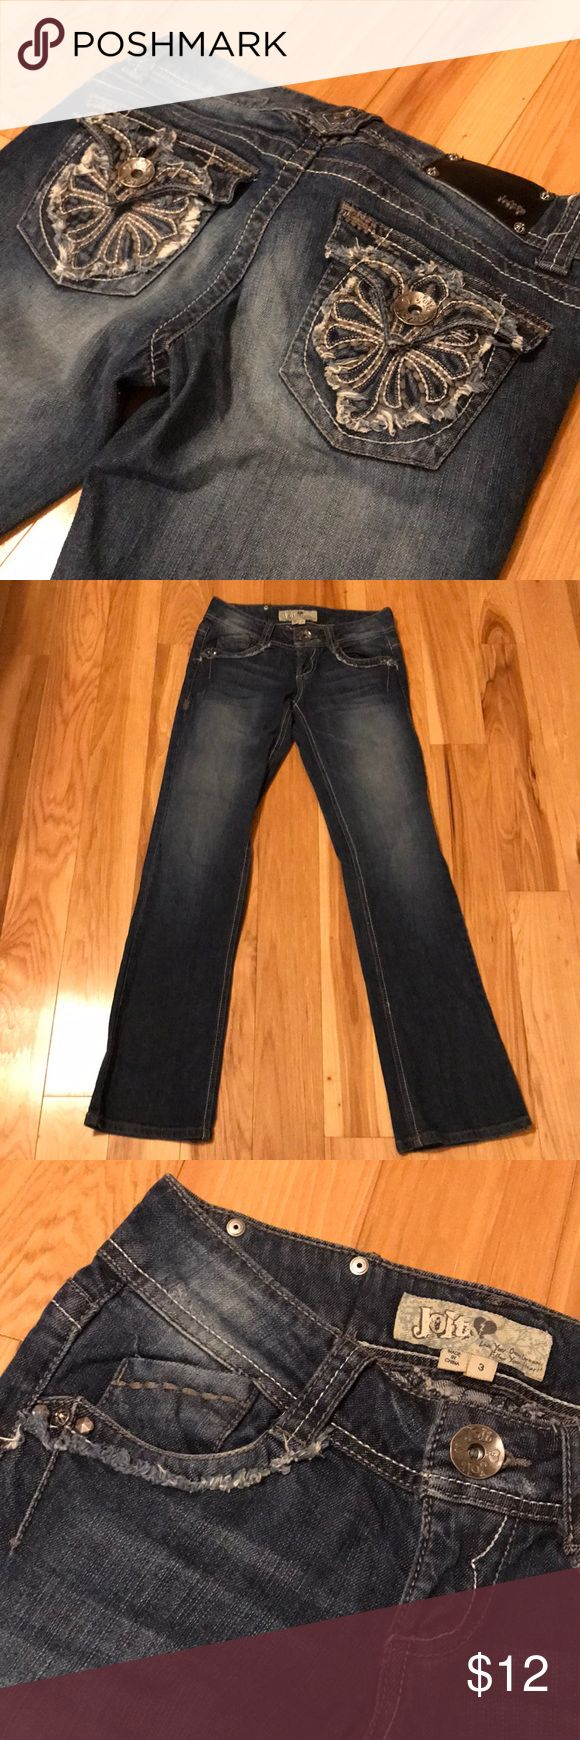 Jolt jeans size 3 These are a pair of Jolt jeans size 3 jeans in excellent condition. Slightly bootcut but slightly straight leg jean with stretch. Best of both worlds! Comes from a smoke free and pet free home. Jolt Jeans Boot Cut